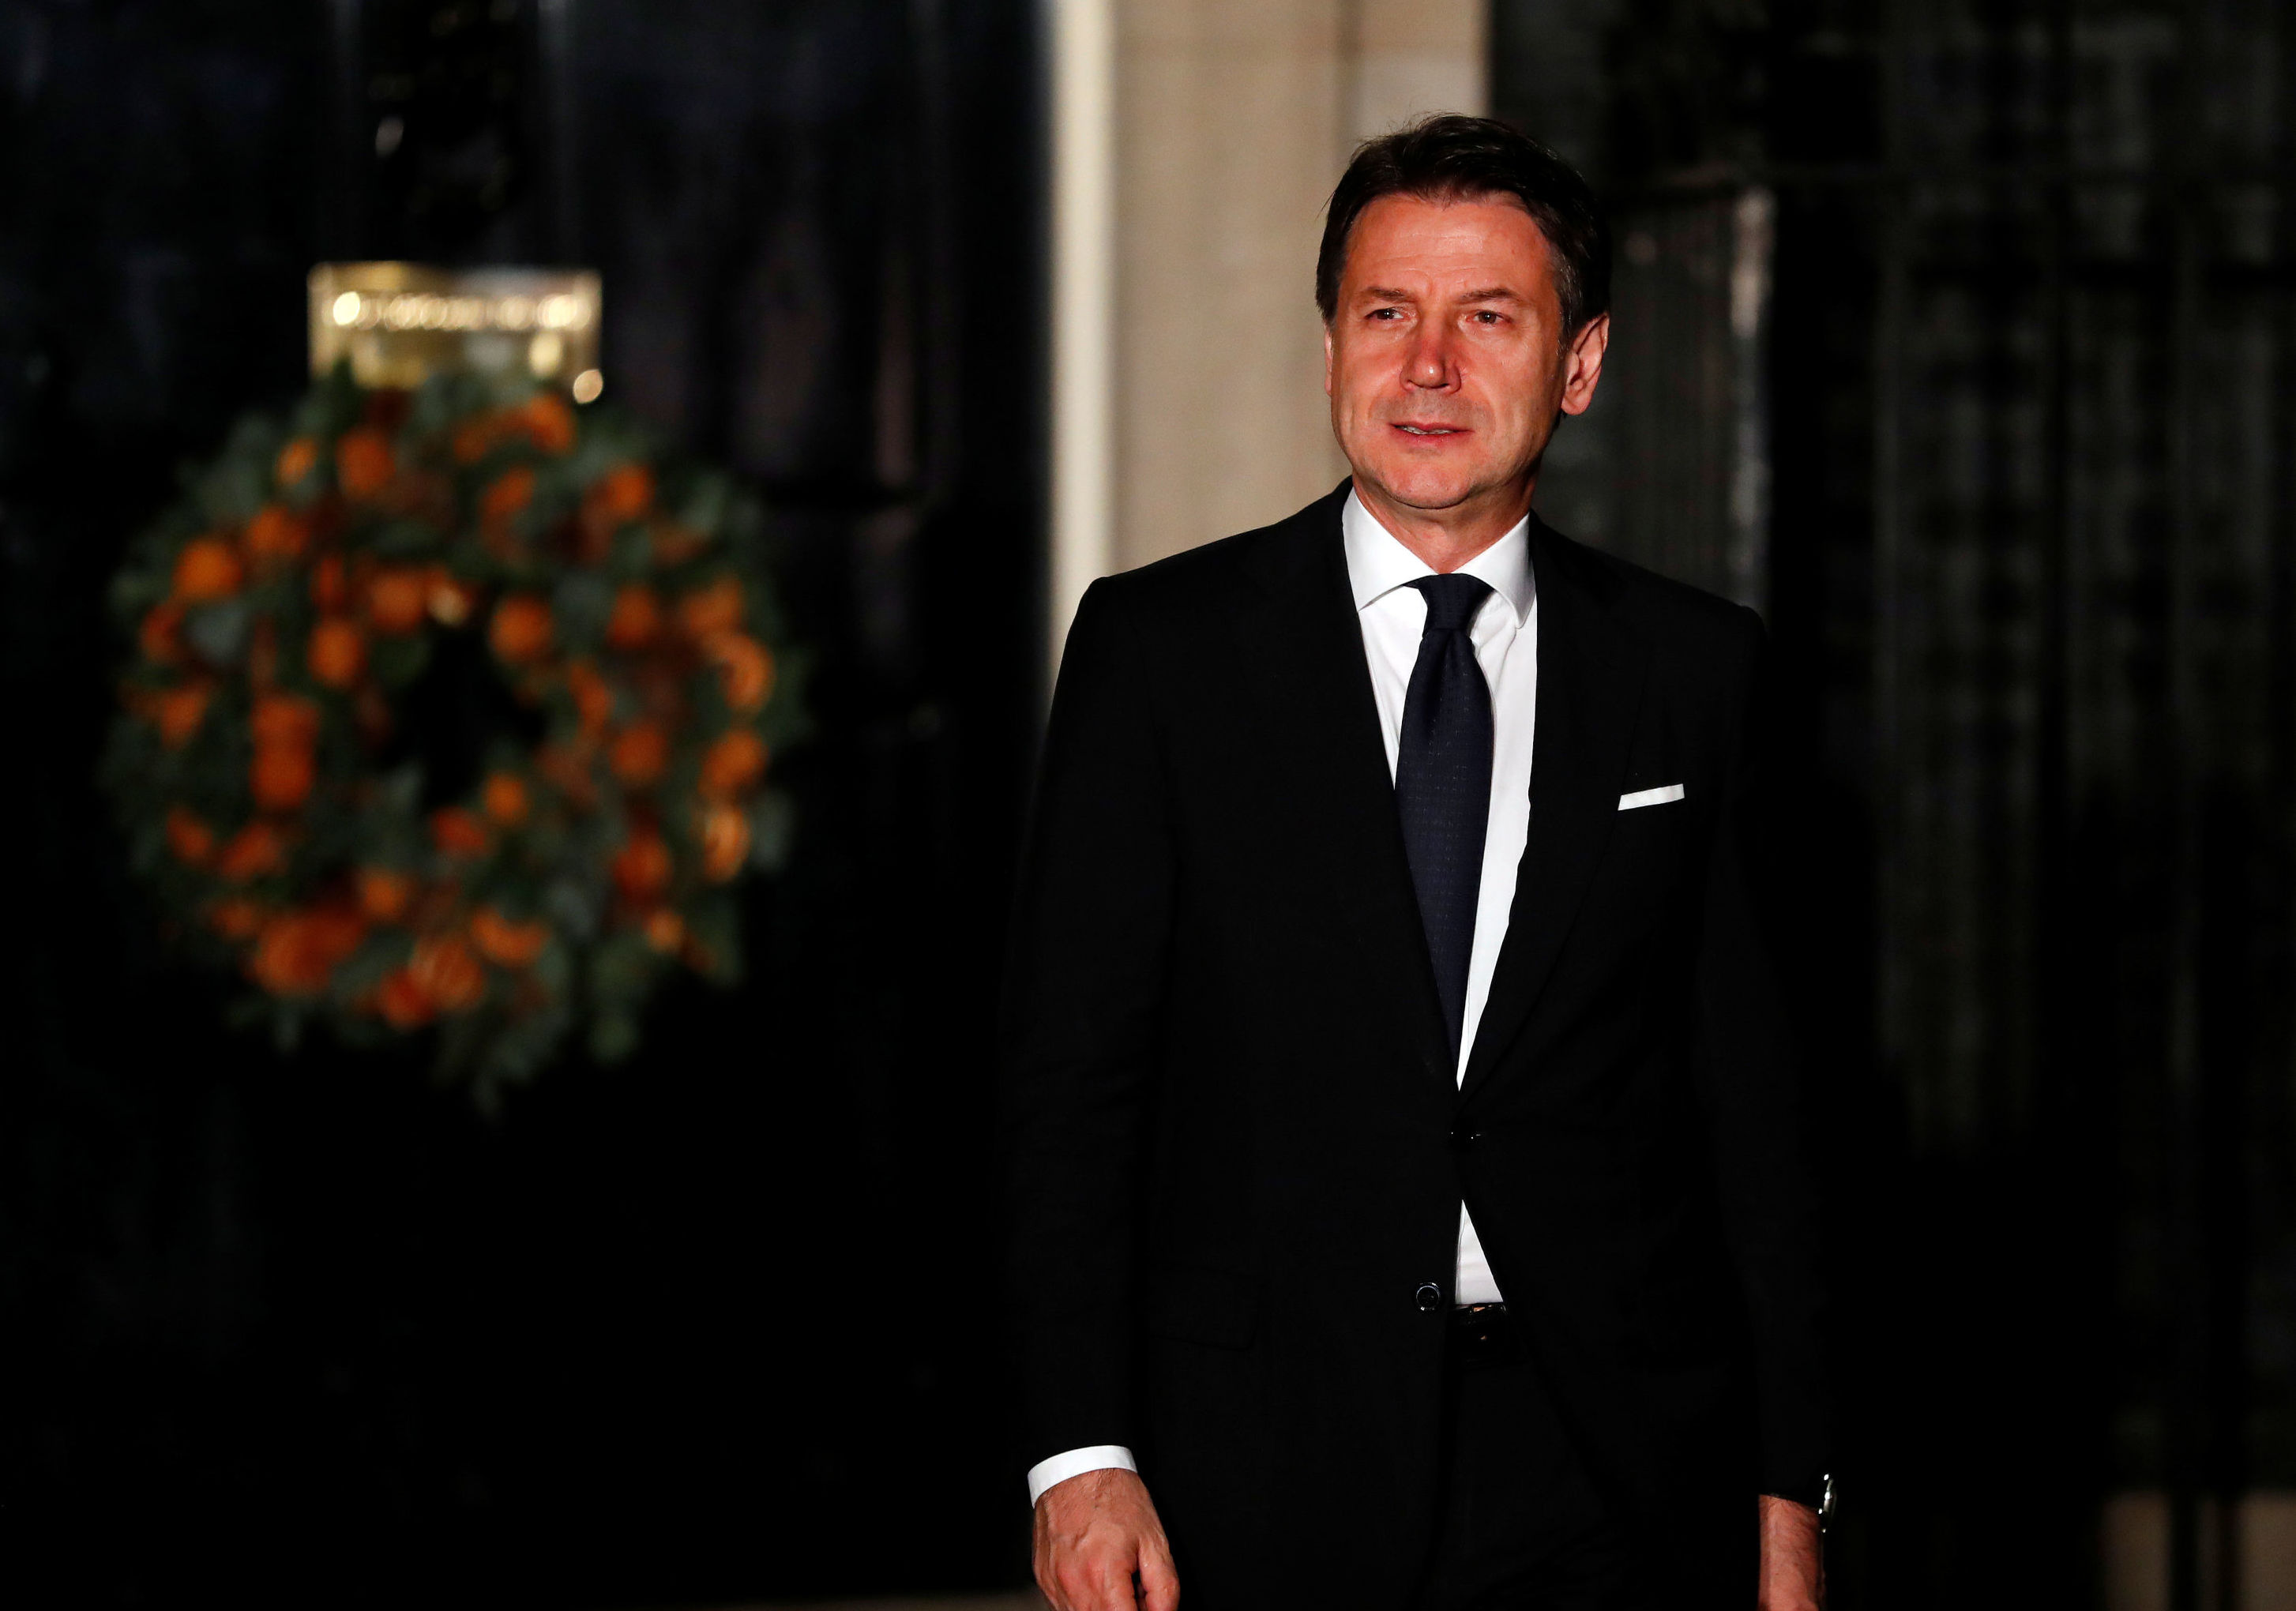 Giuseppe Conte a Downing street